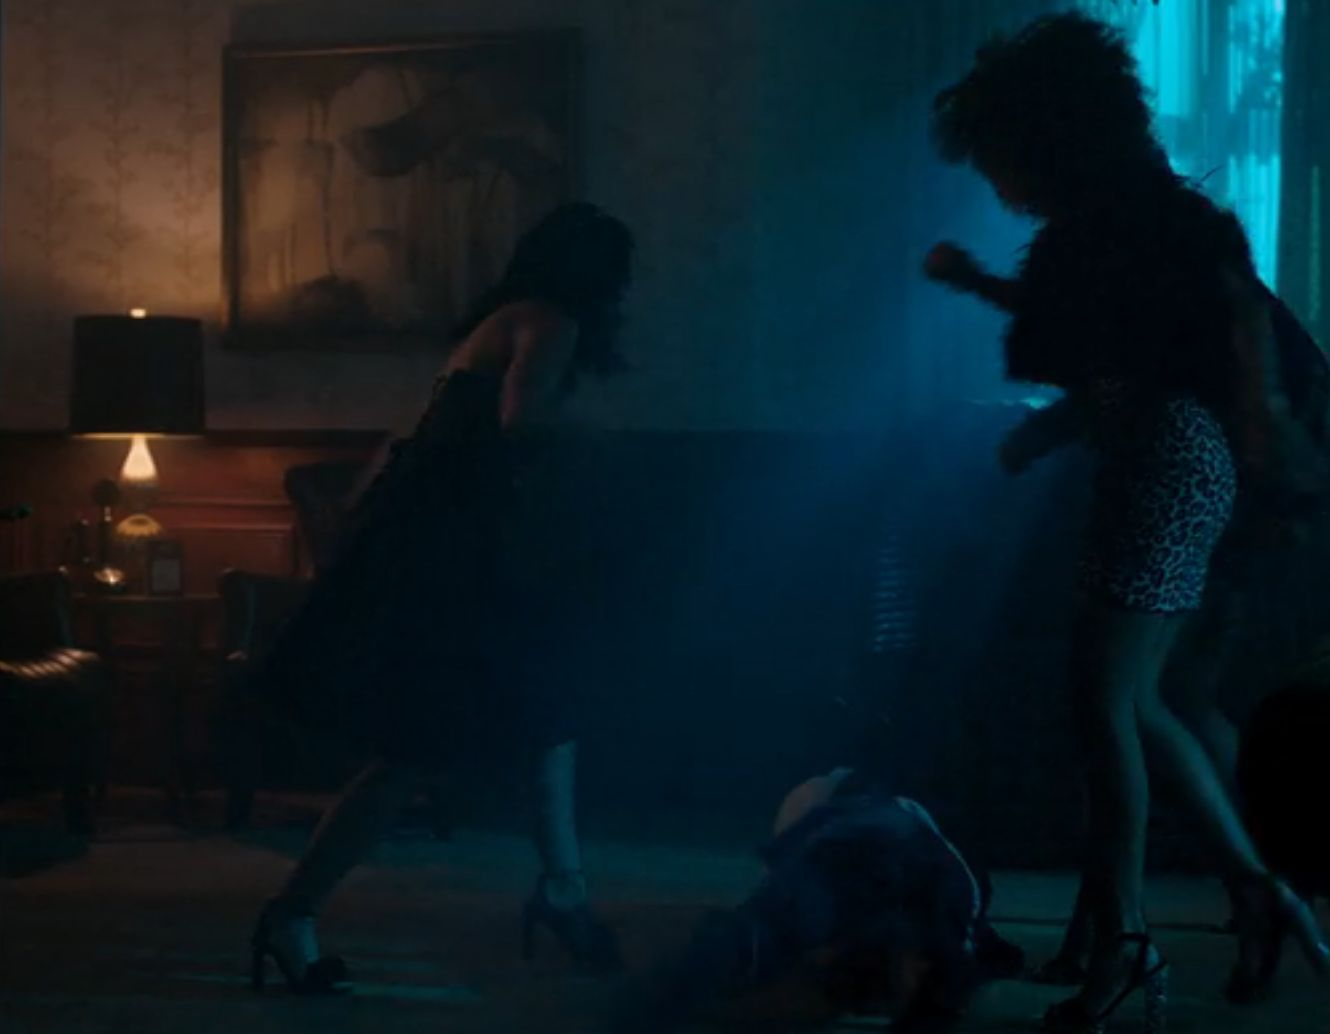 Veronica, Josie and the Pussycats beating up Nick (CW / Riverdale)